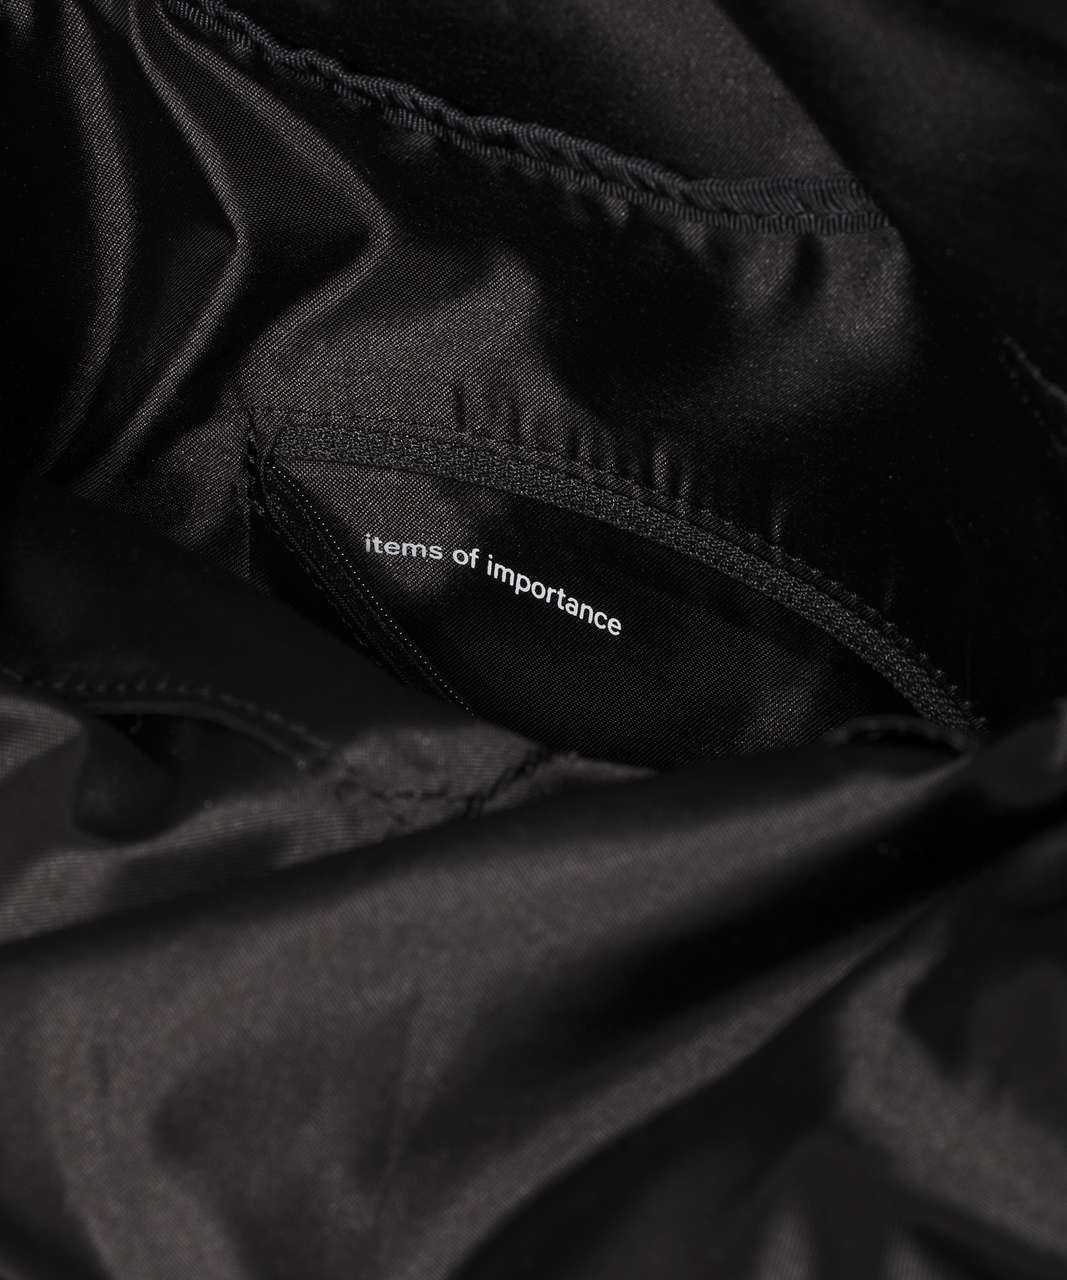 Lululemon Face Forward Backpack *lululemon x Roksanda - Black